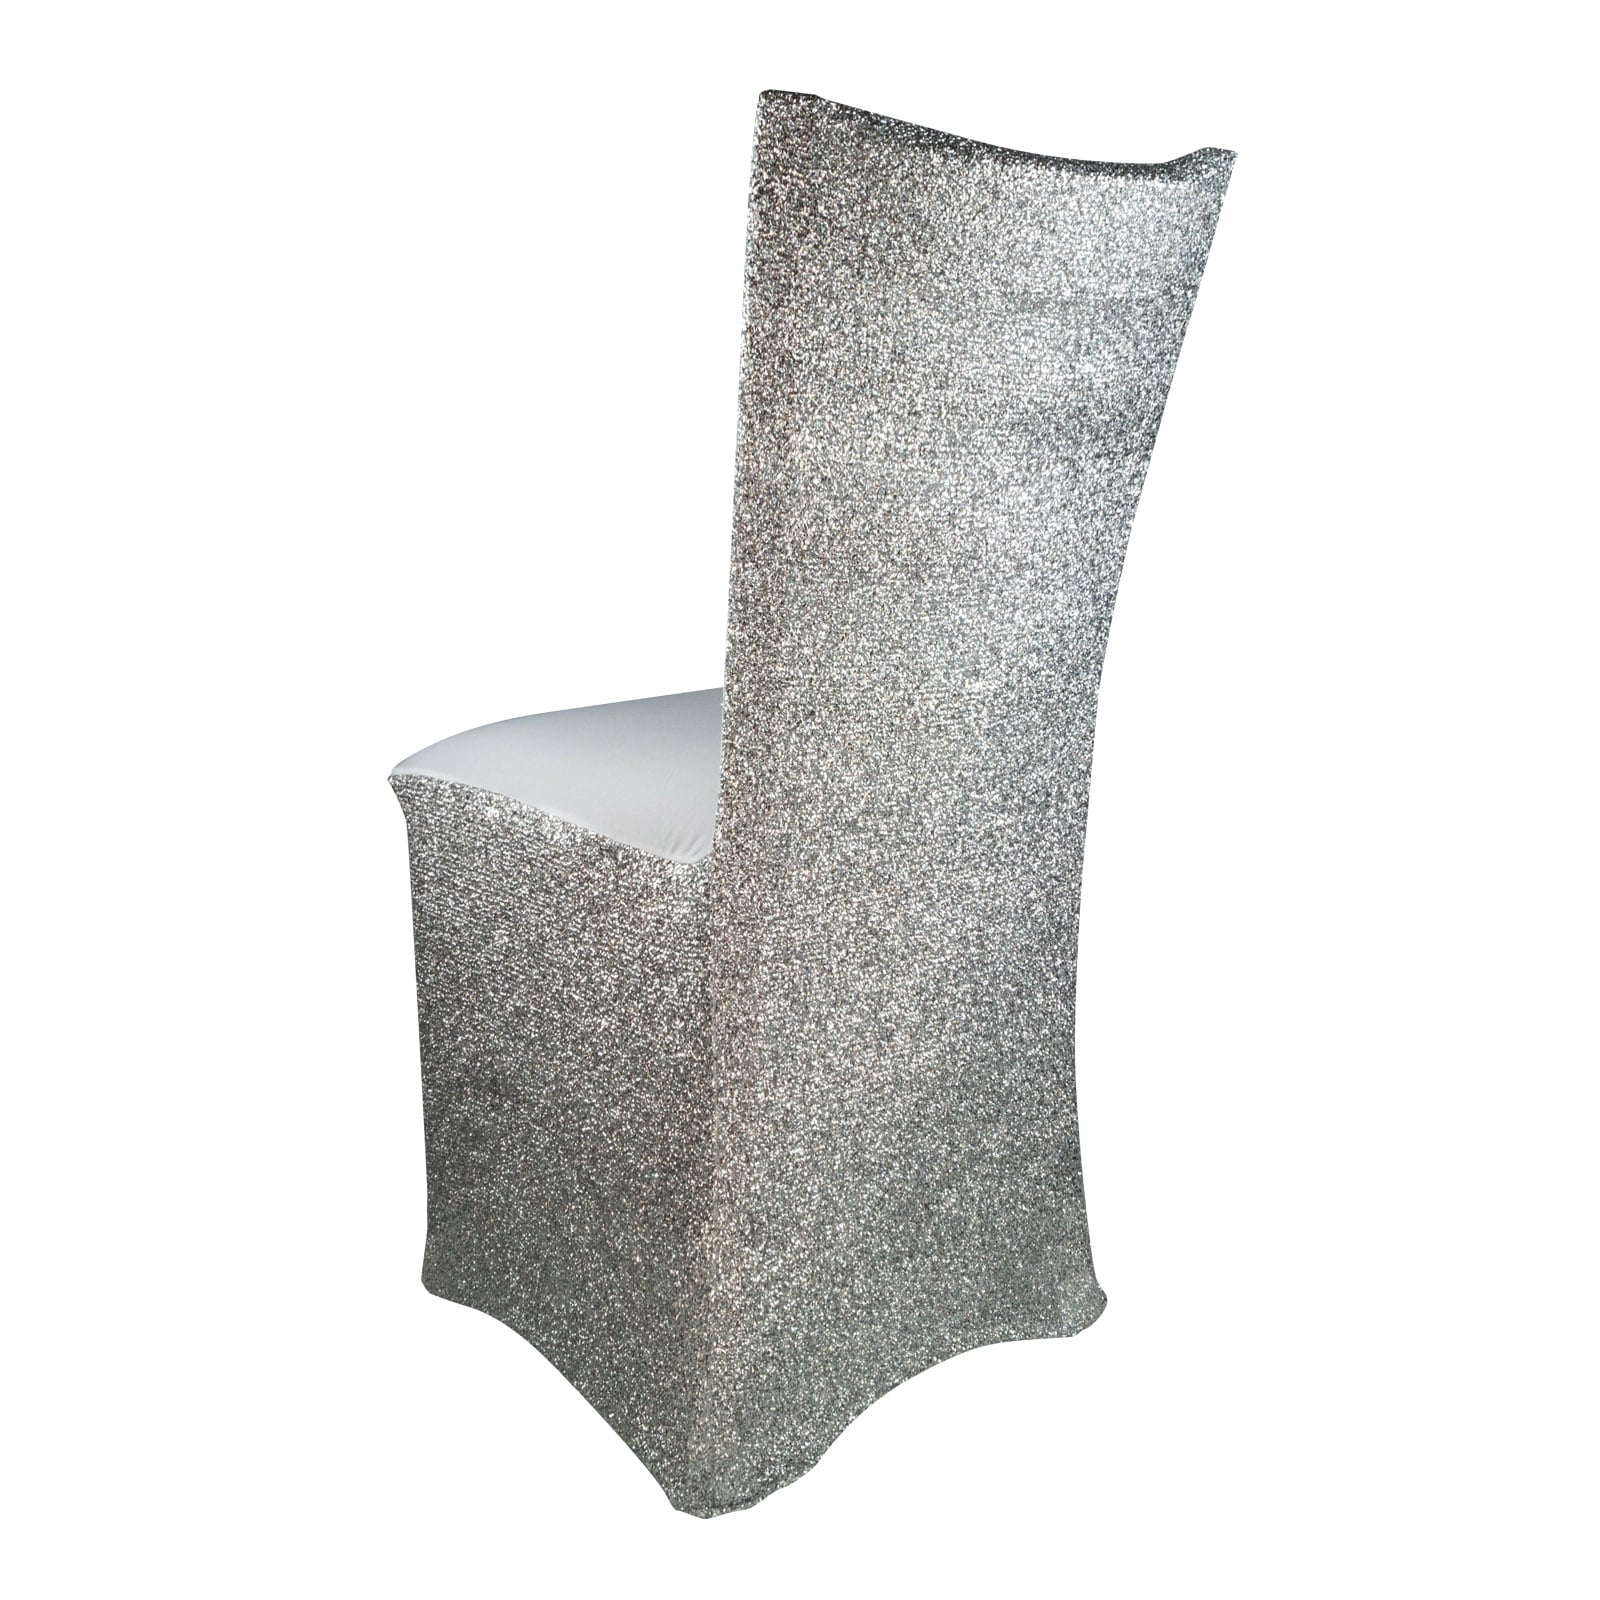 wholesale lycra chair covers australia church chairs for sale used sparkle spandex silver or gold